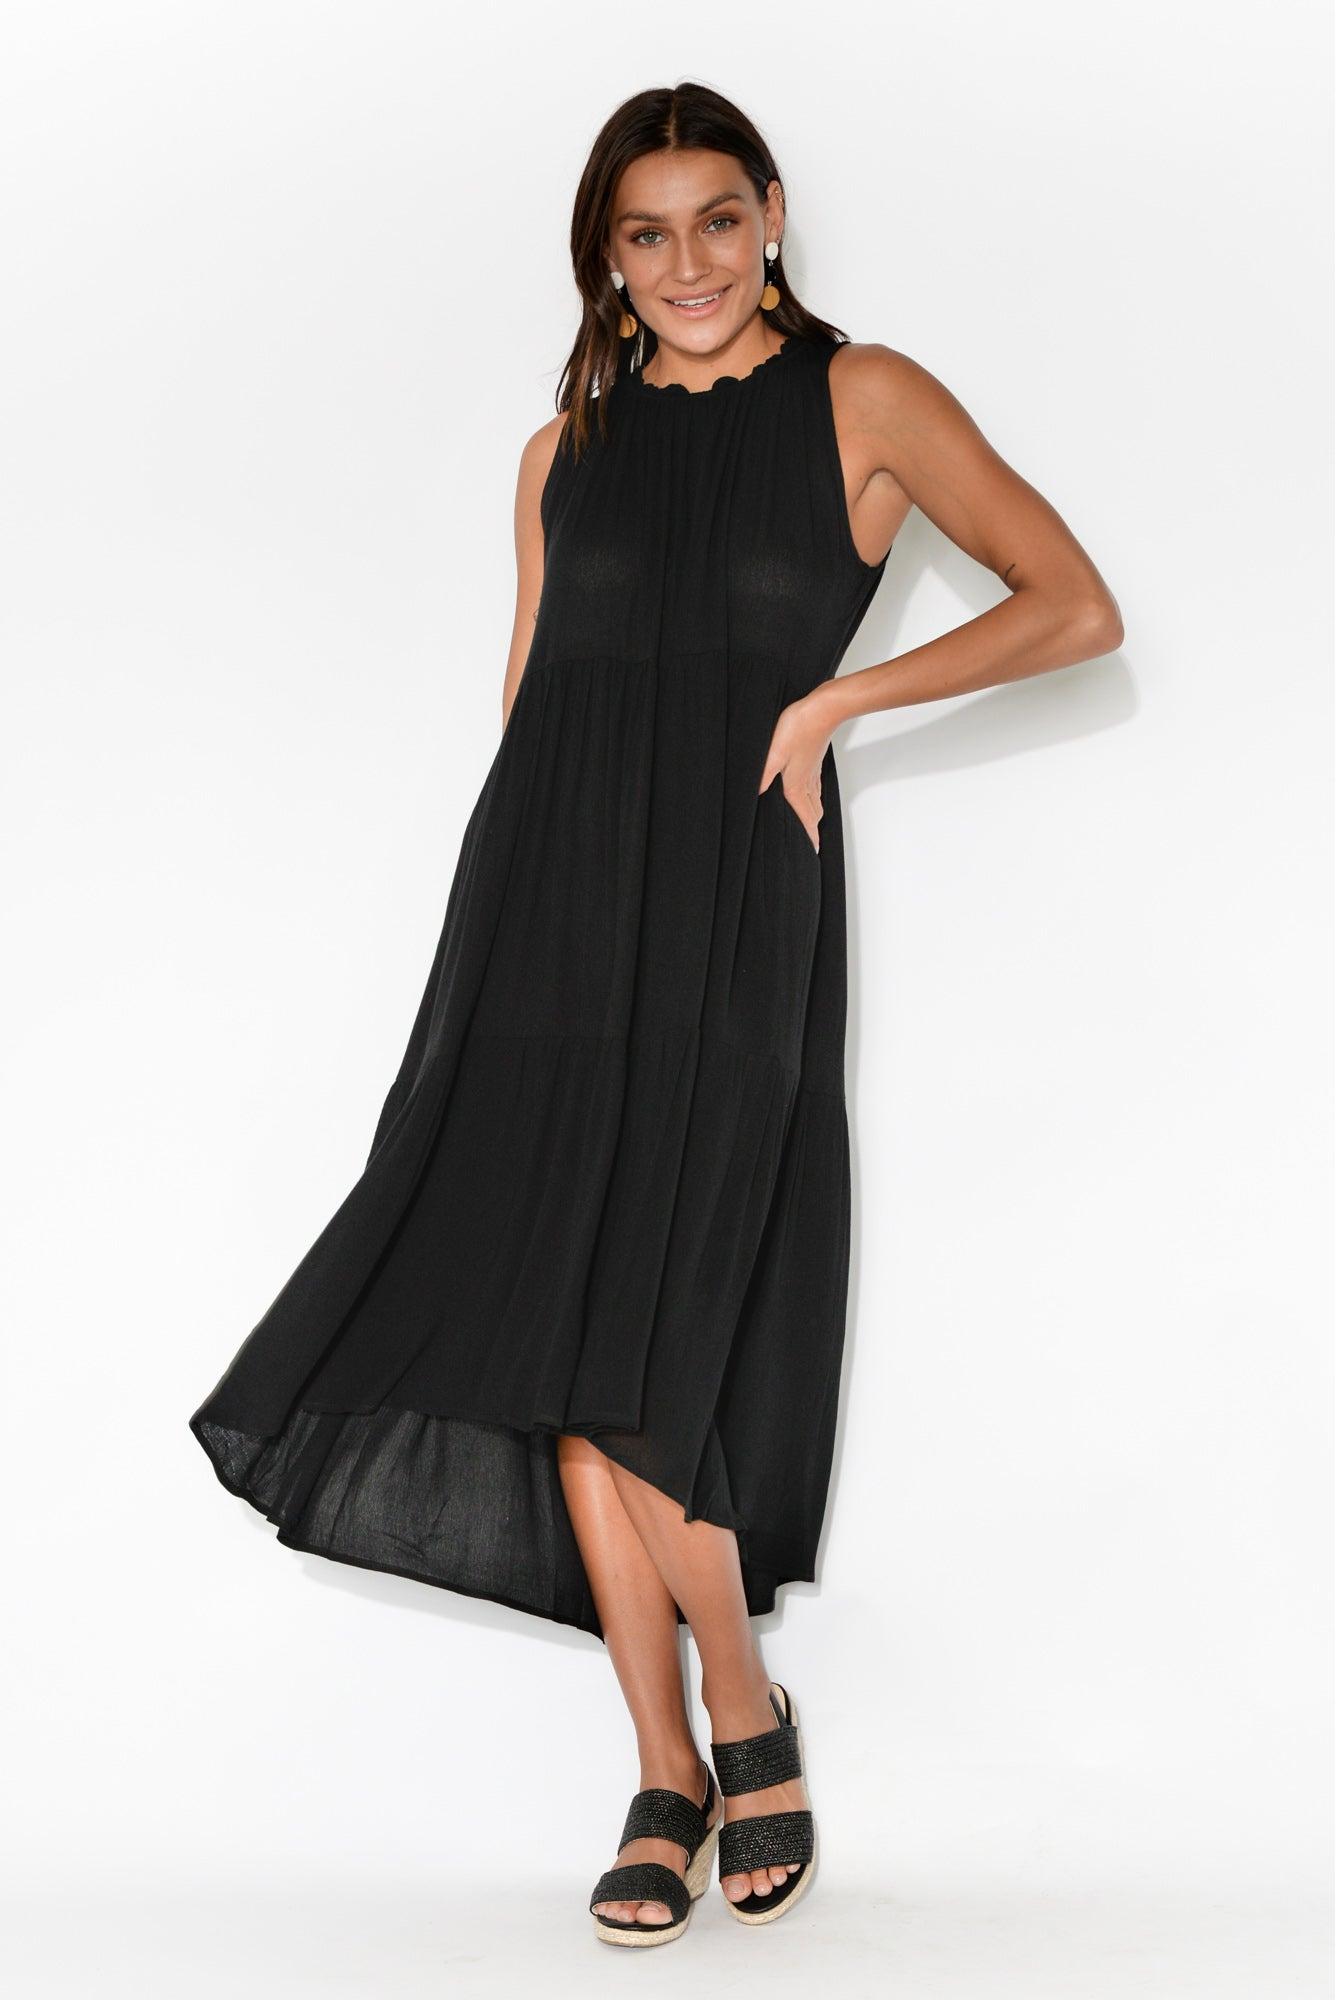 Kyran Black Ruffle Sleeveless Dress